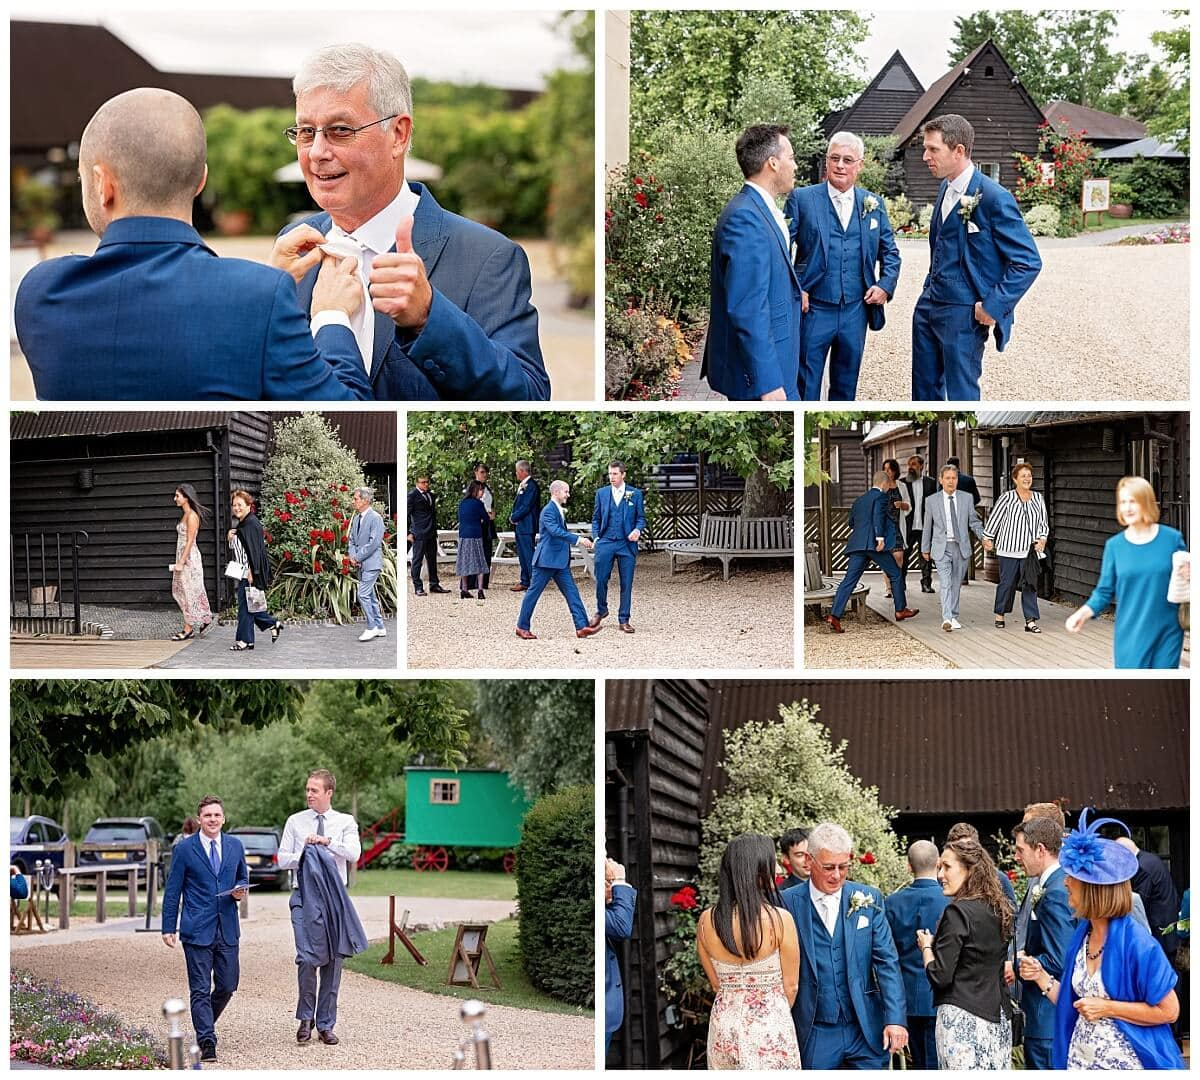 Guests arriving at South Farm